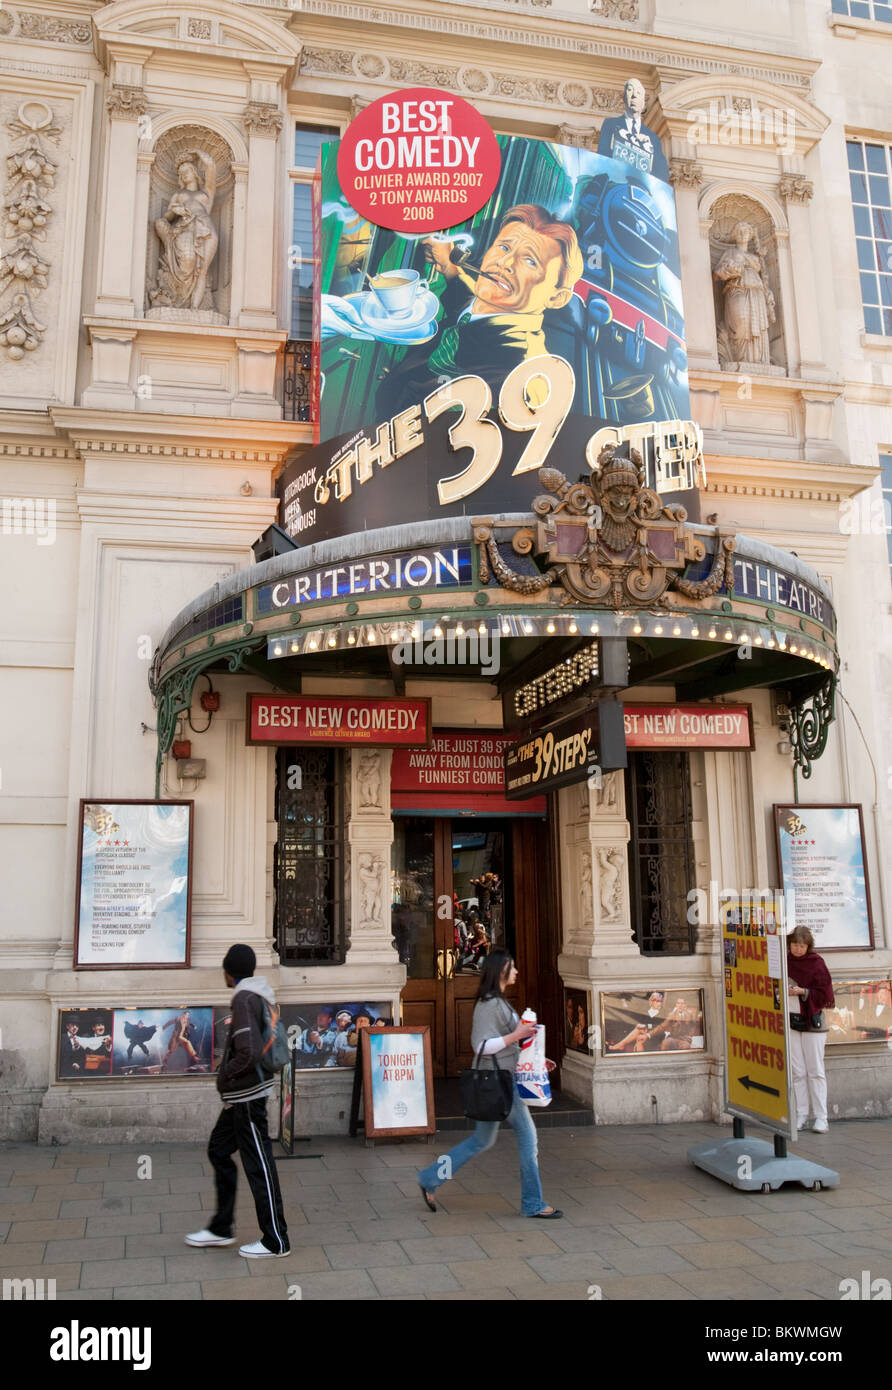 The Criterion theatre, Piccadilly Circus, West End, London, UK - Stock Image